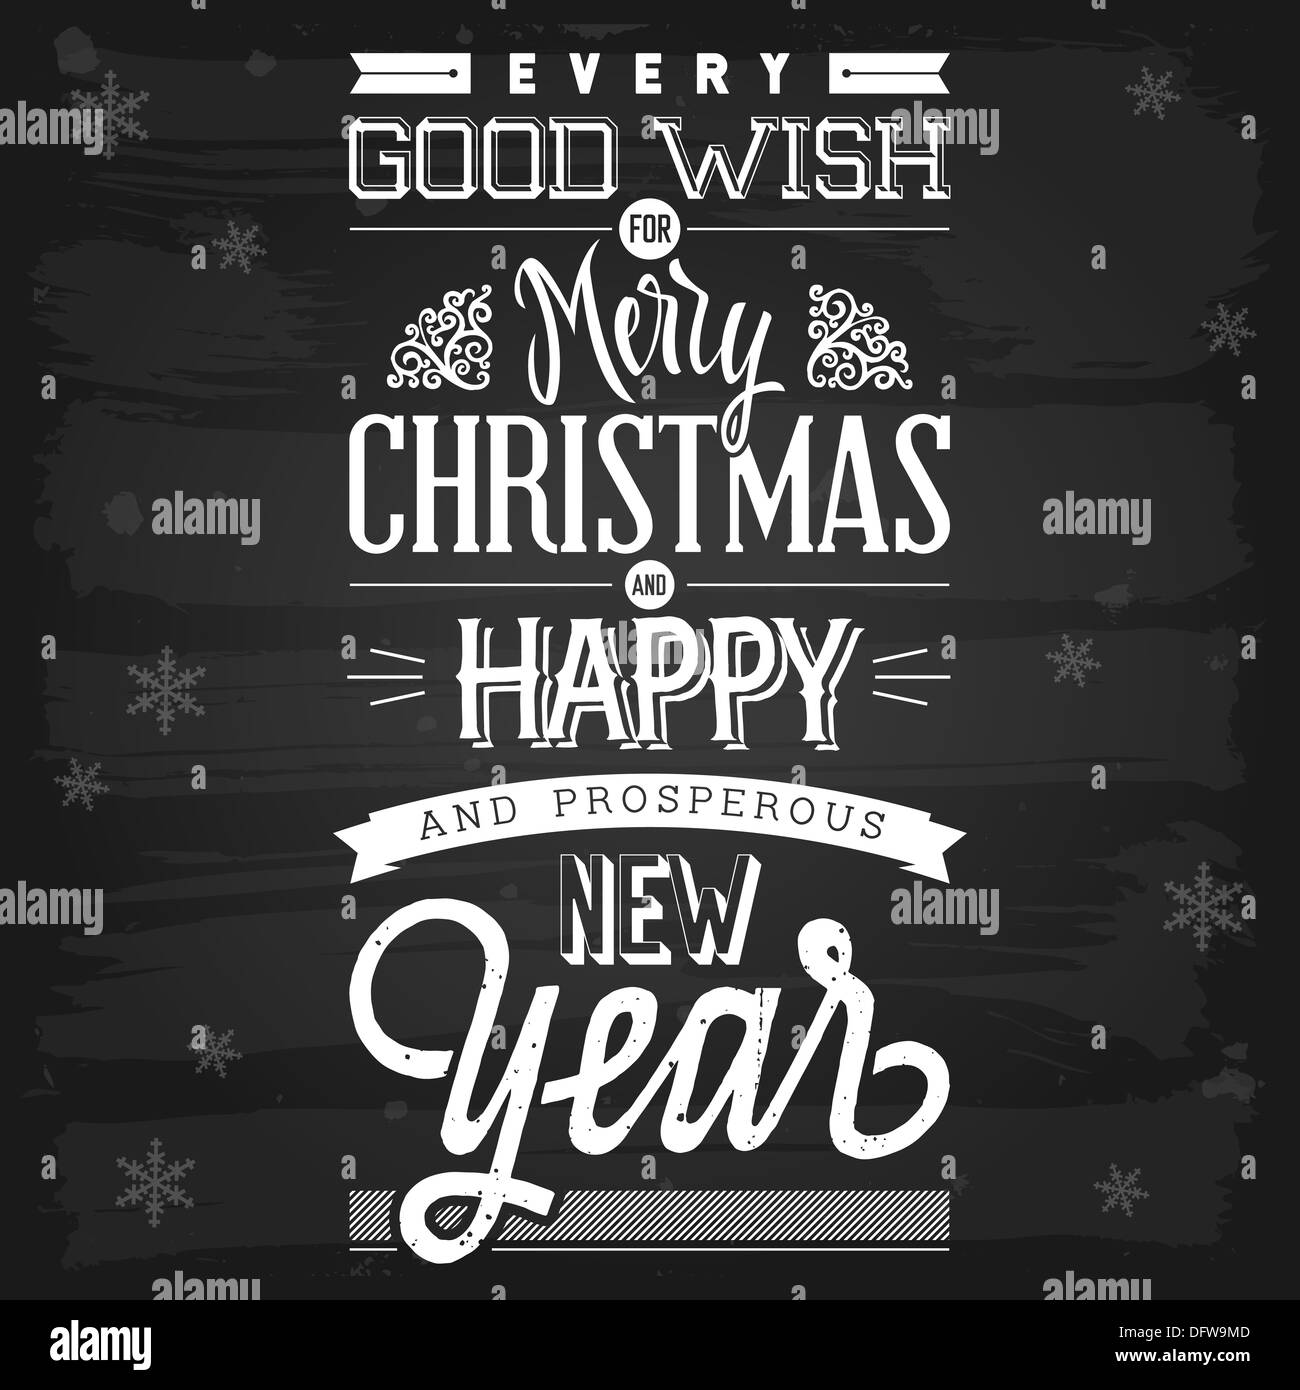 New Year Greetings Black And White Stock Photos Images Alamy